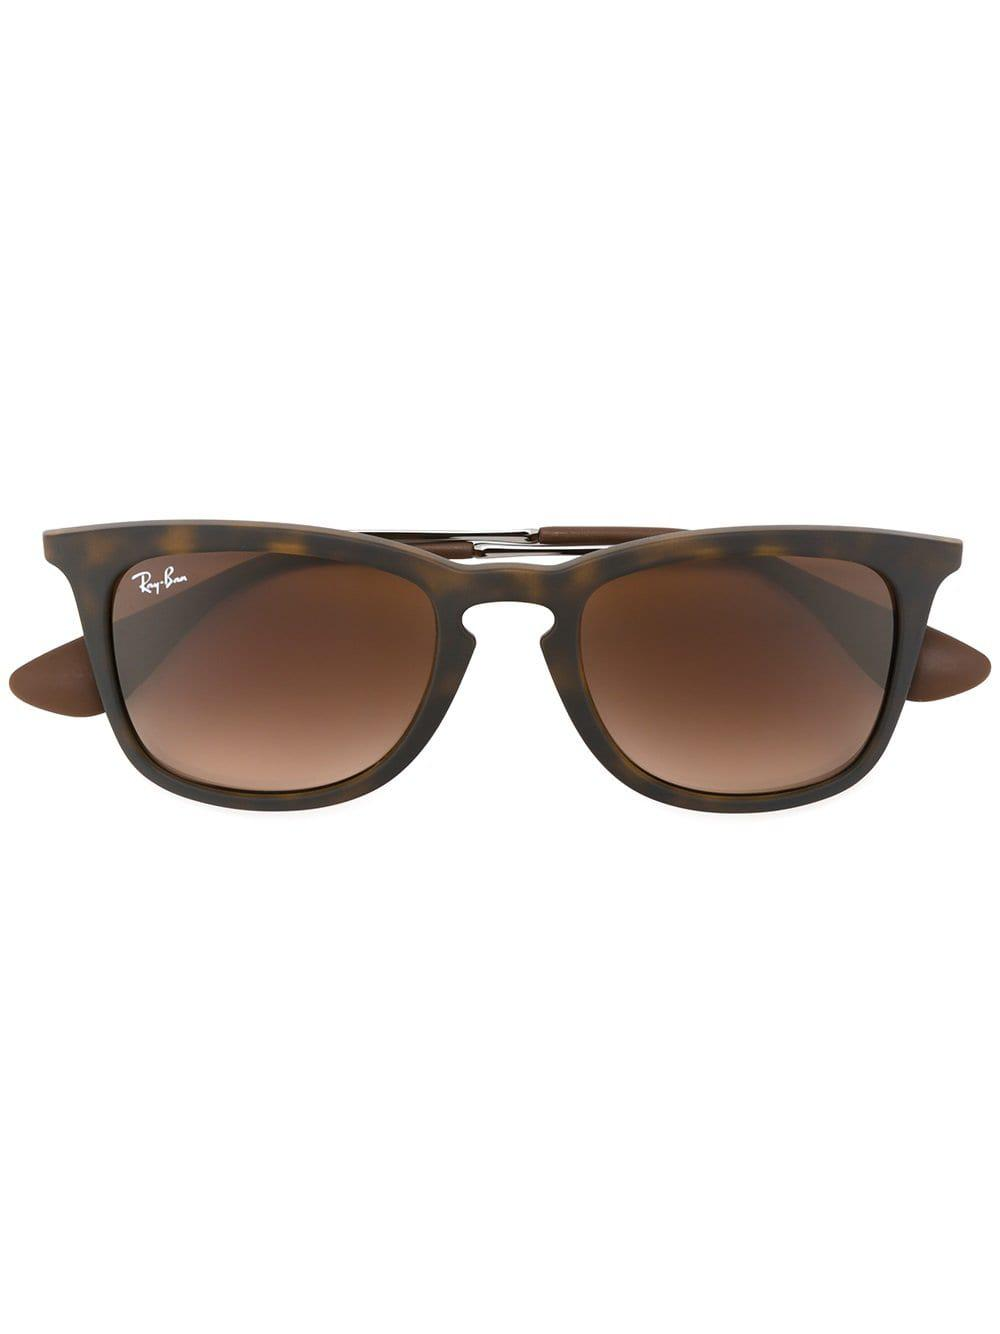 Ray-Ban 'rb4221' Sunglasses in Brown